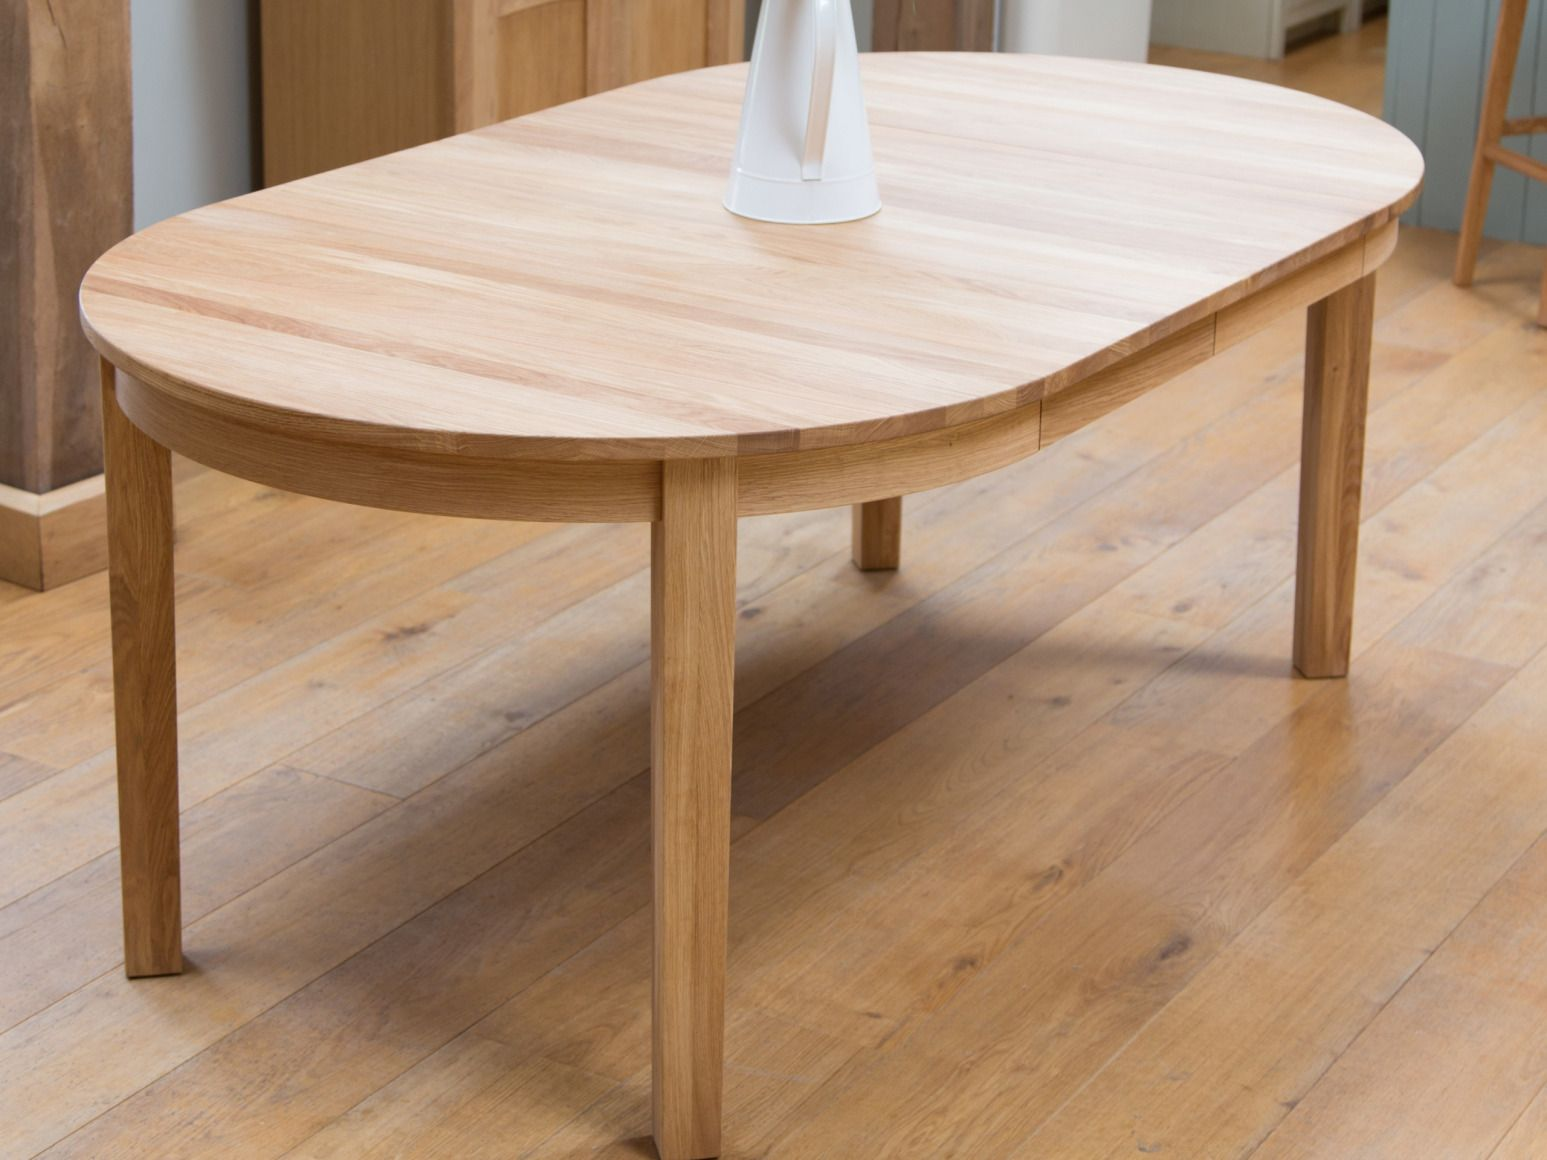 100 Round Dining Table Extends To Oval Best Way Paint Furniture Check More